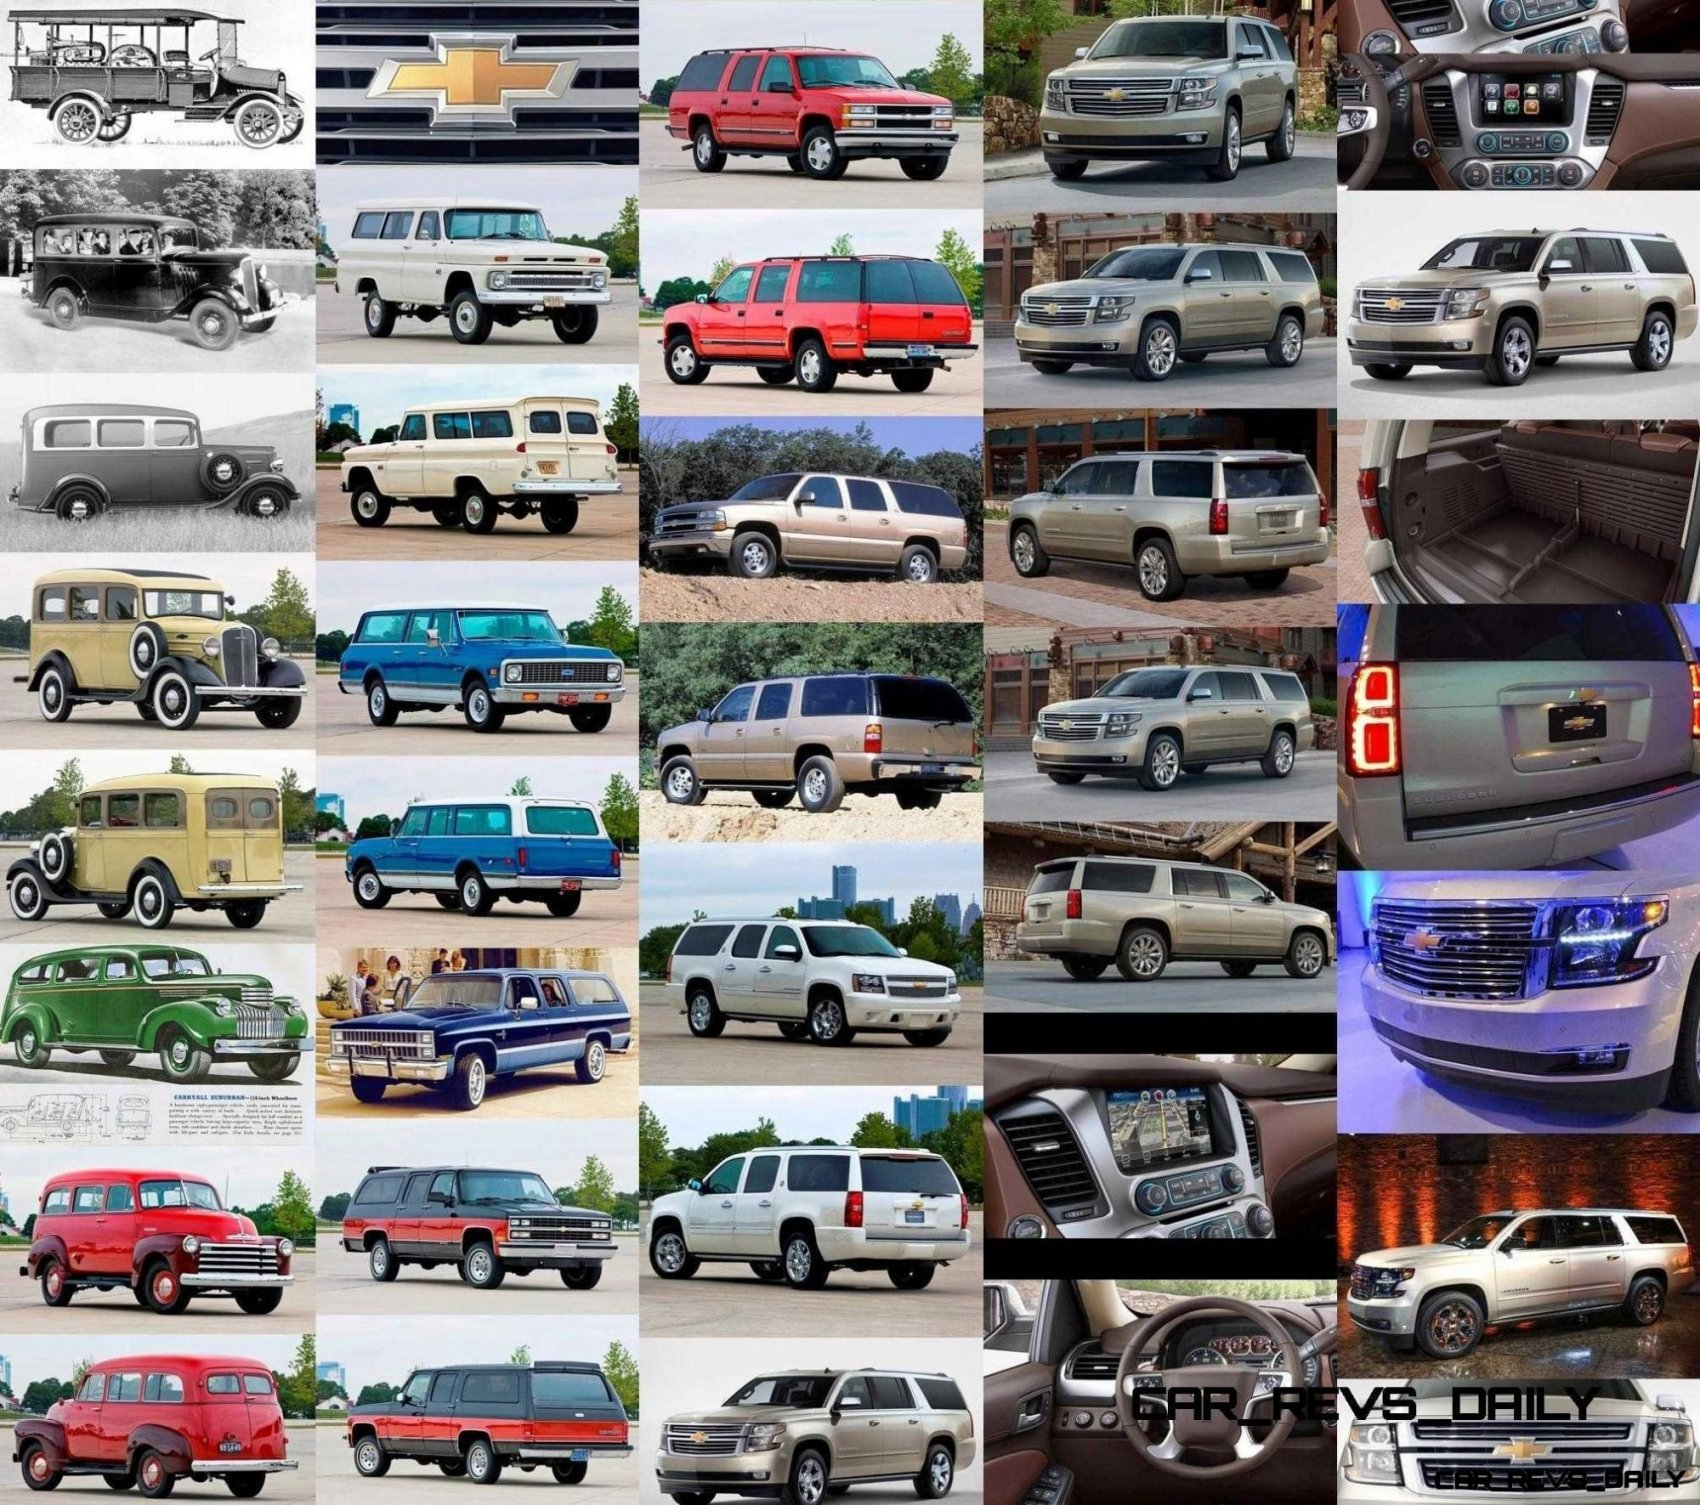 Wallpaper and Poster of 1915 - 2015 Chevrolet Suburban's Evolution!